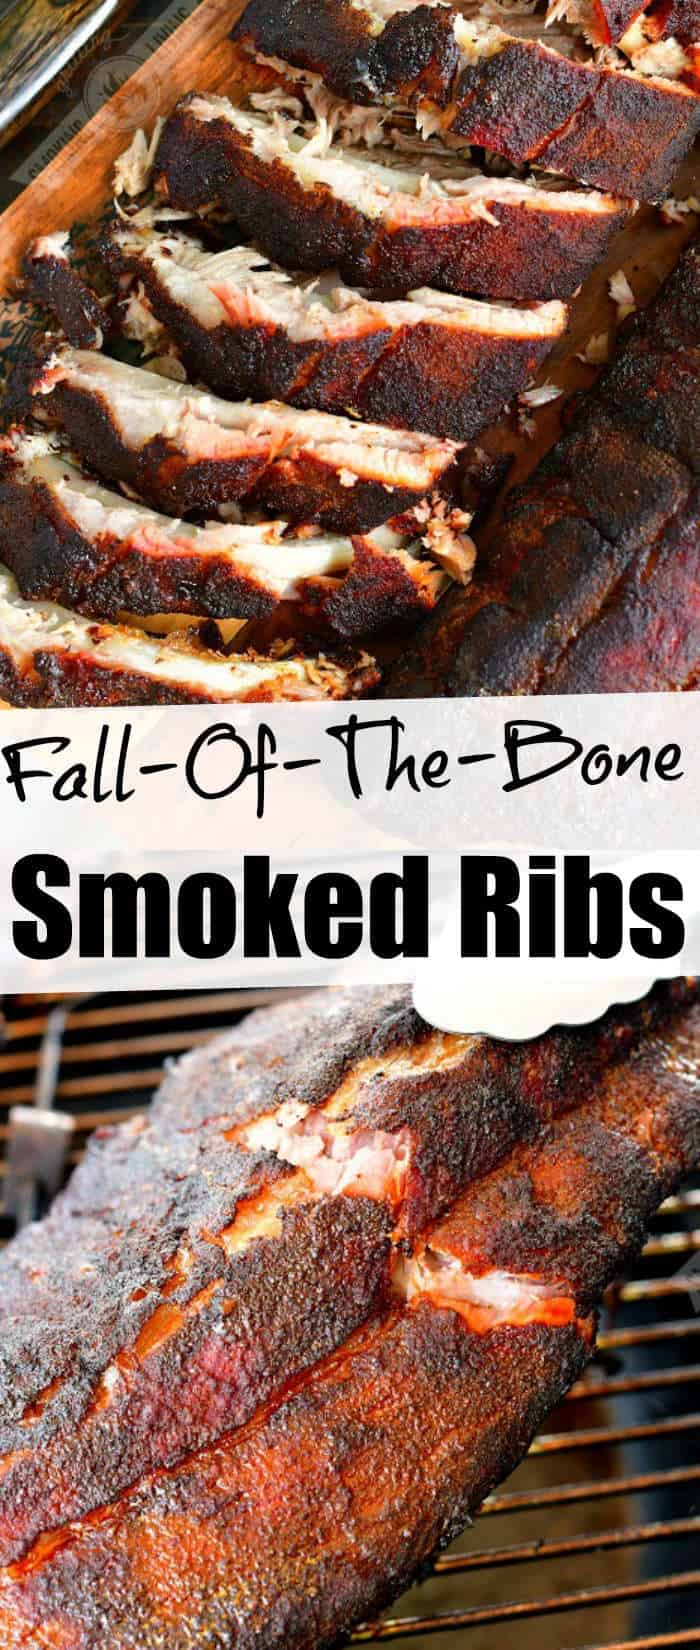 collage of two images on cut rack of ribs on top and cracking a rack of ribs on the grill on the bottom